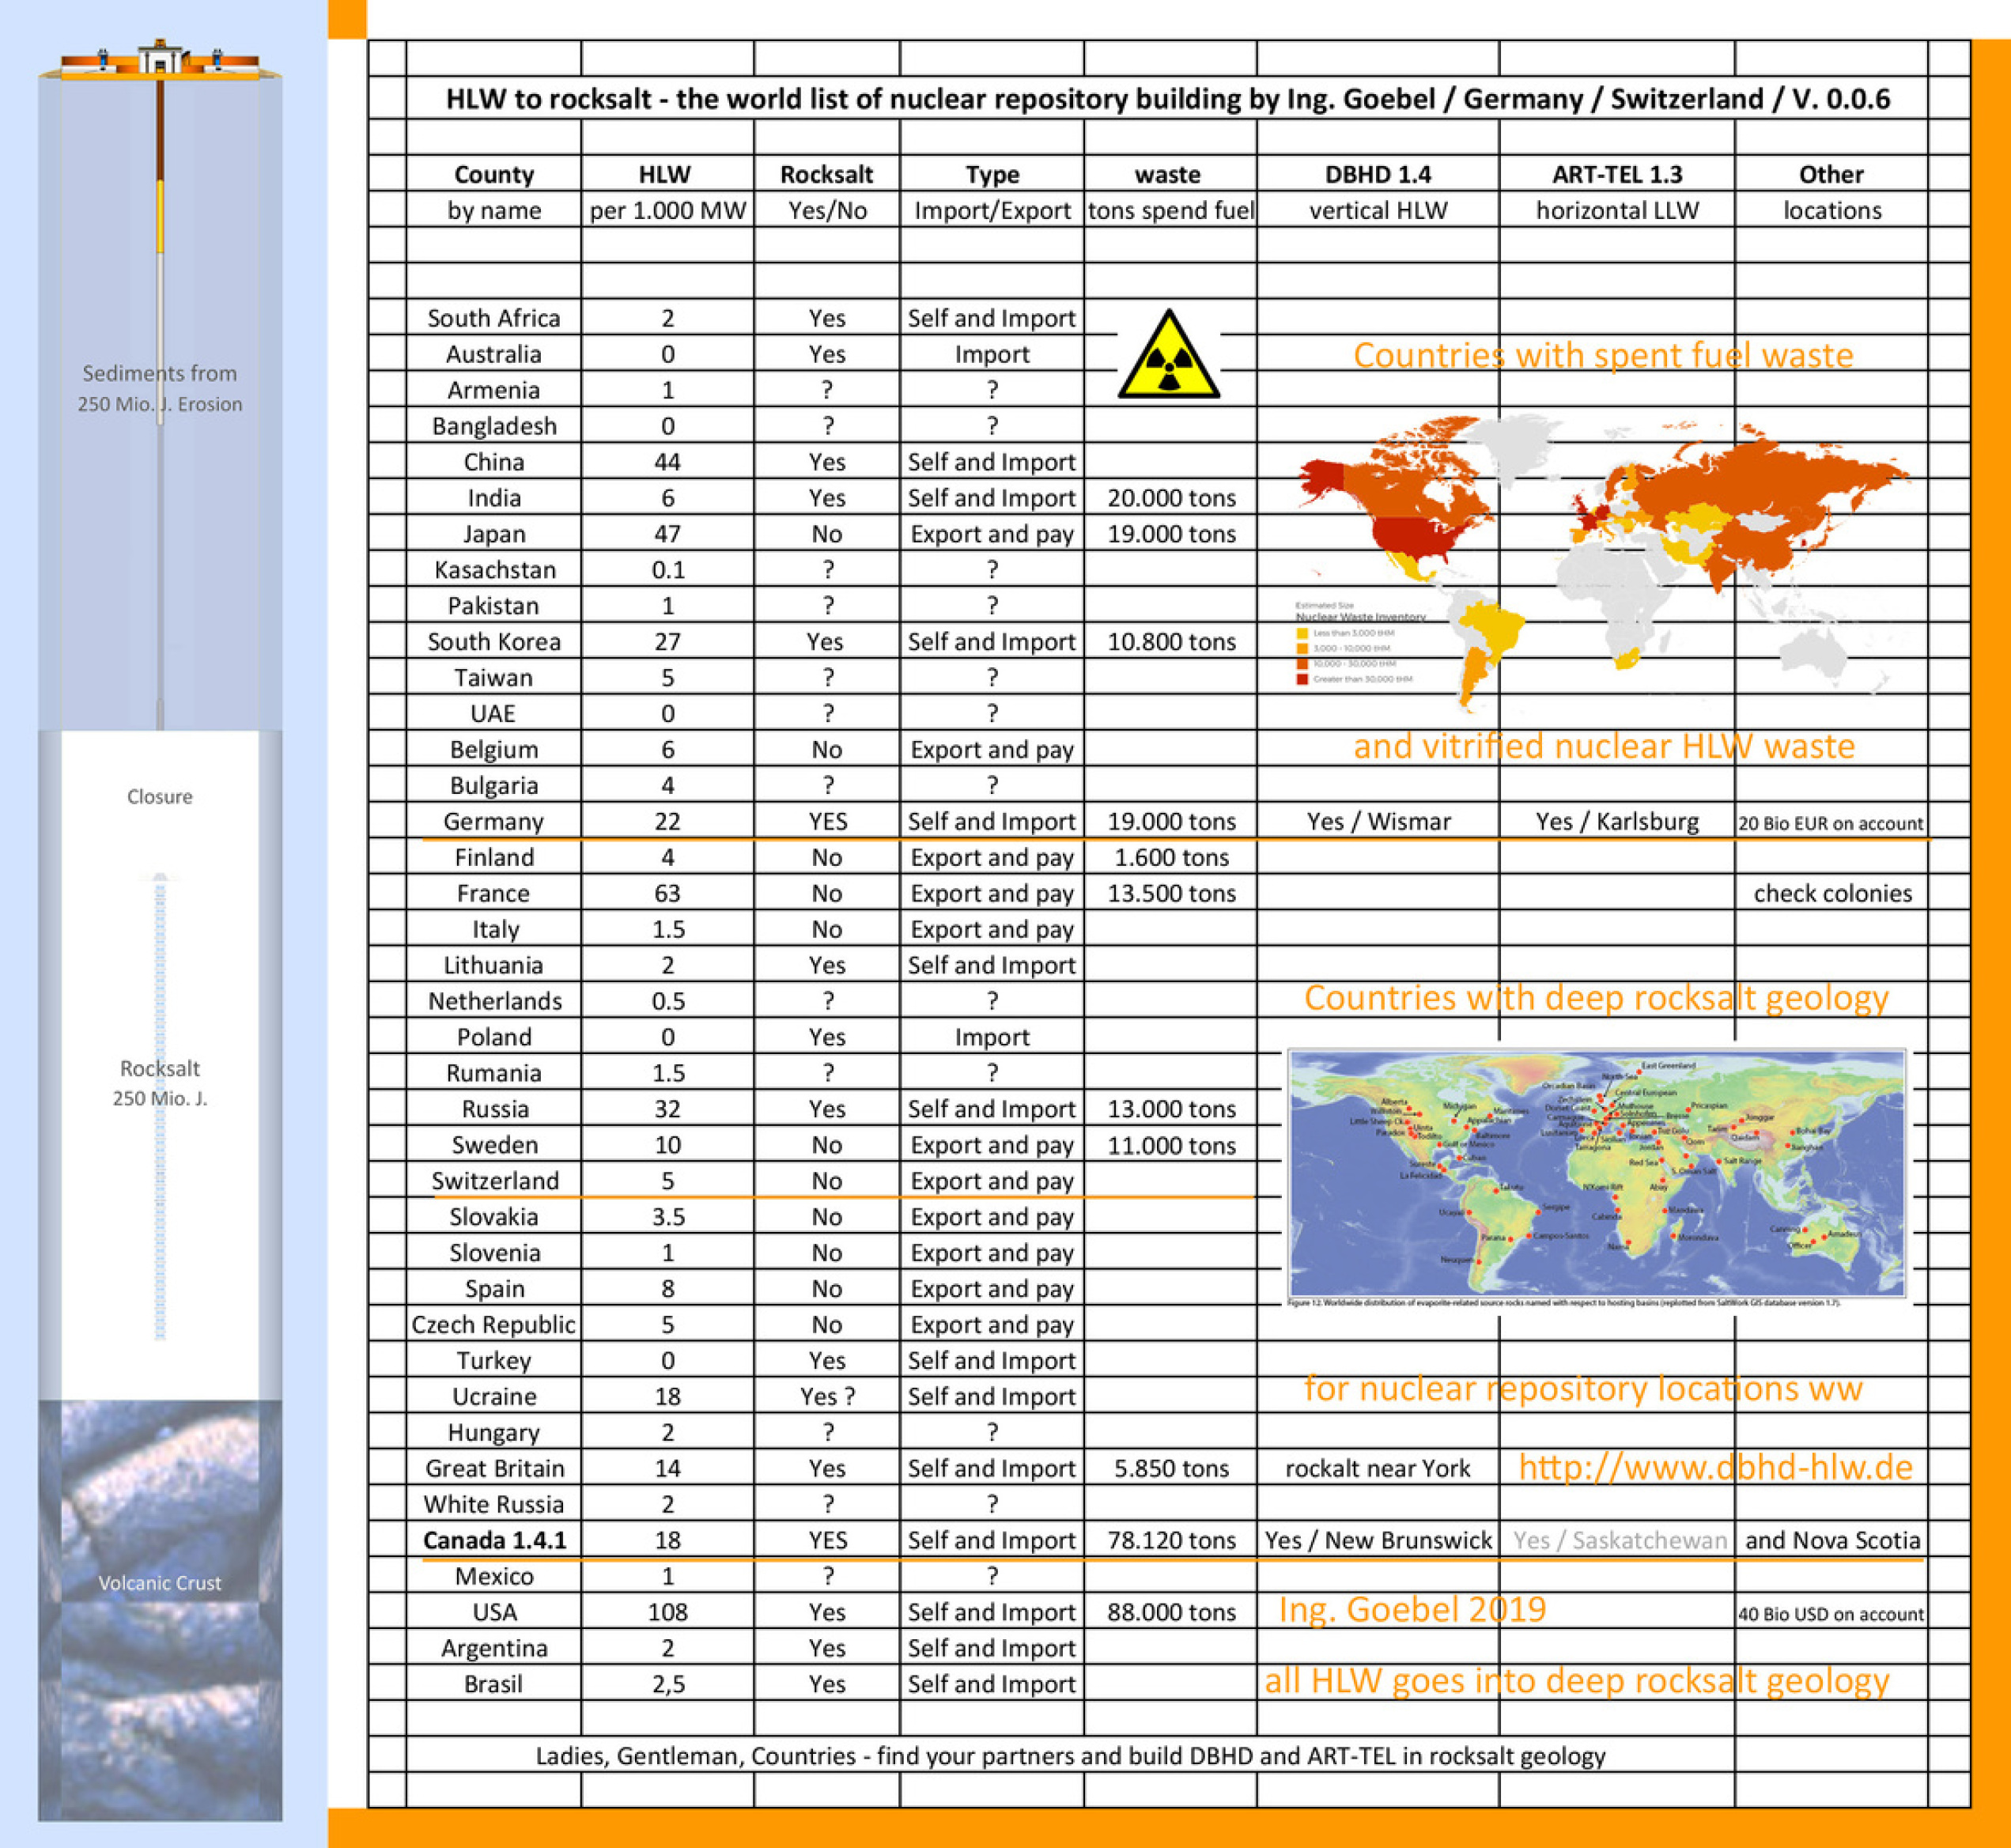 world nuclear repository list - world nuclear waste disposal